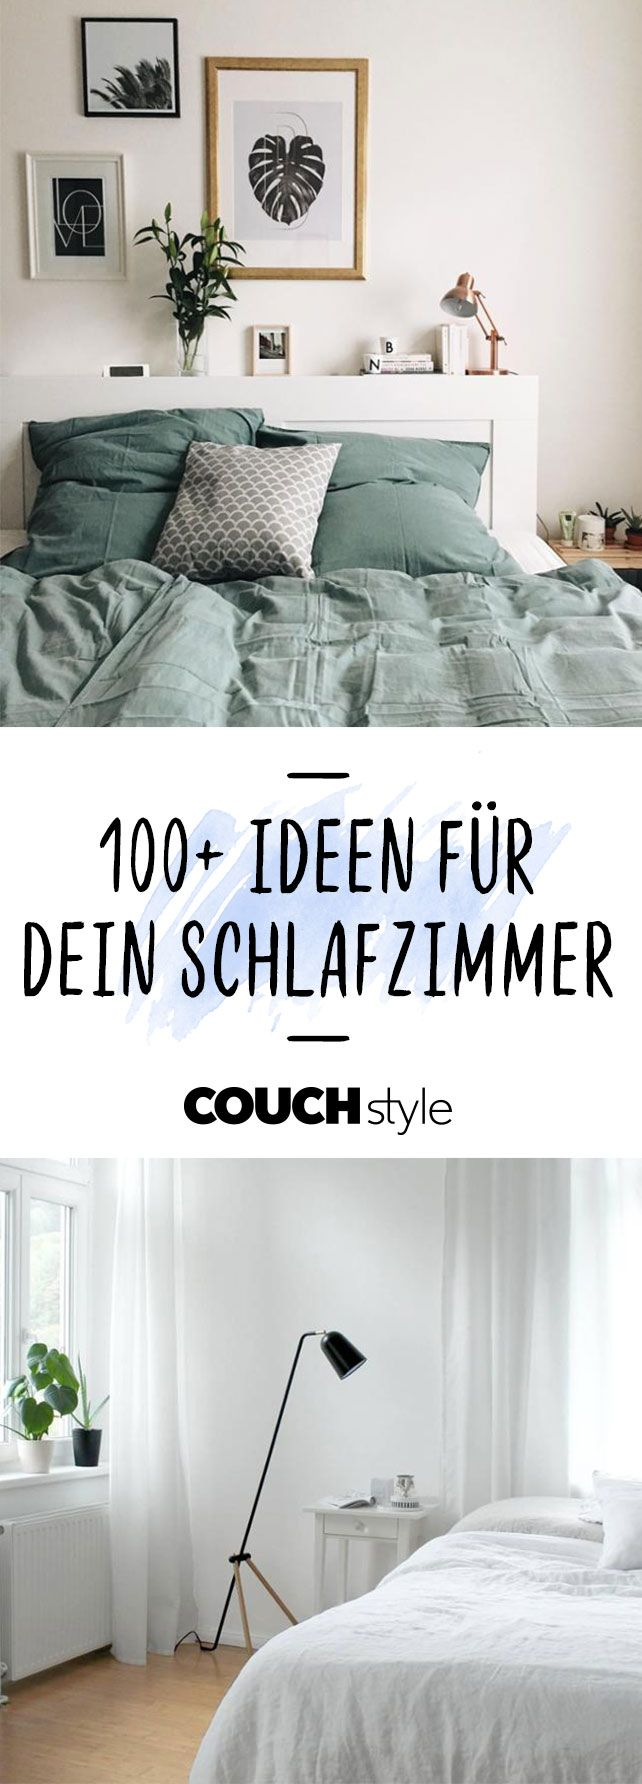 schlafzimmer bilder m bel f r die wohlf hloase schlafzimmer pinterest schlafzimmer. Black Bedroom Furniture Sets. Home Design Ideas